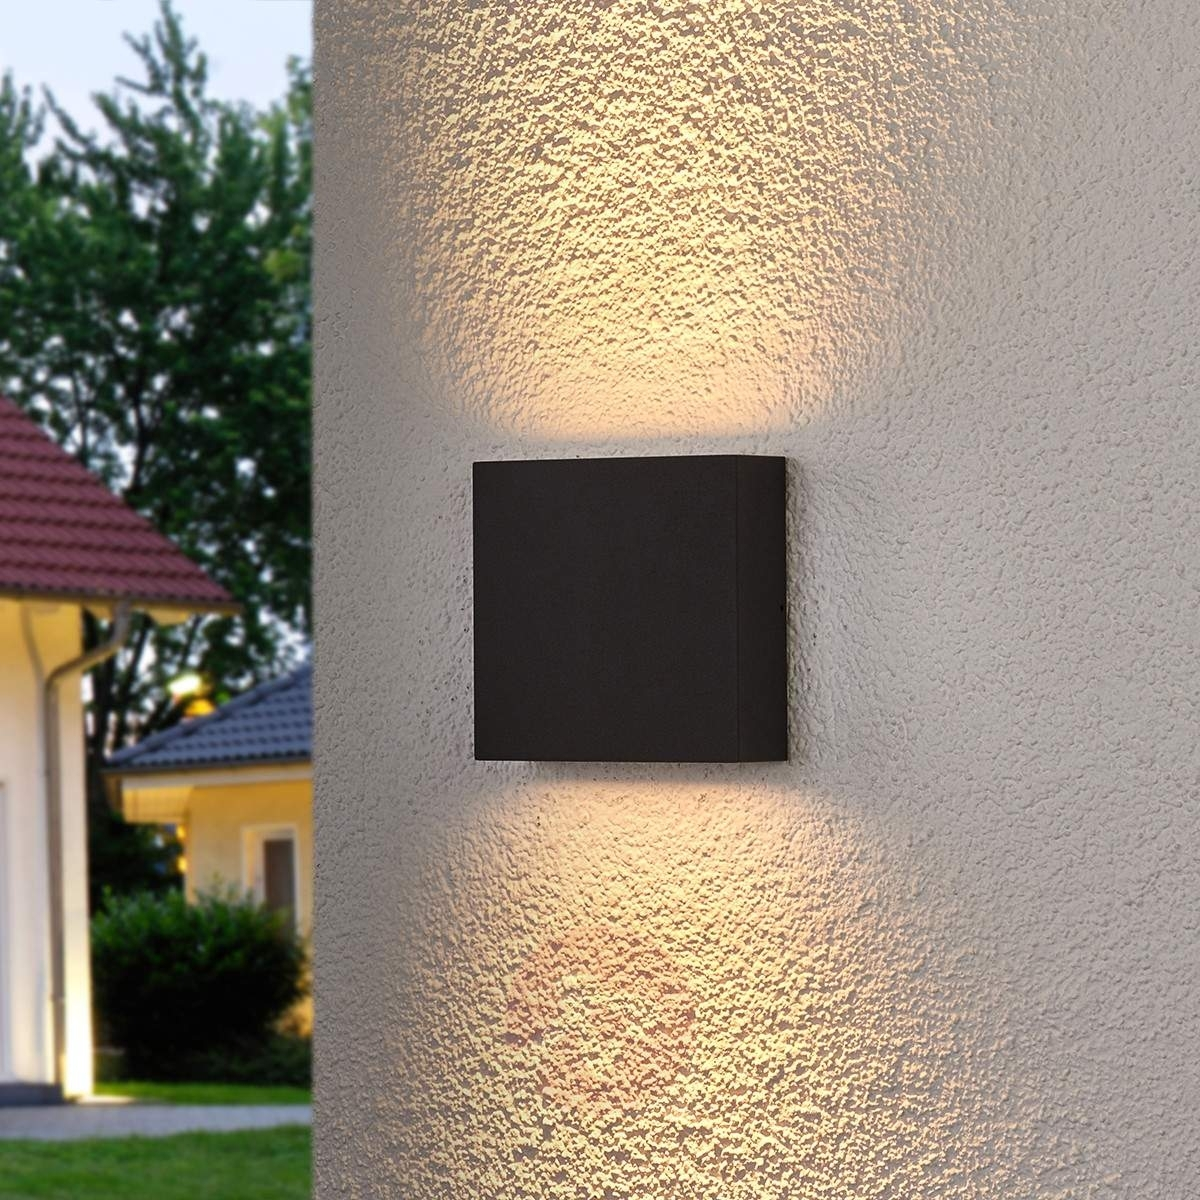 Square Led Outdoor Wall Light Trixy, Graphite Grey | Lights (#15 of 15)